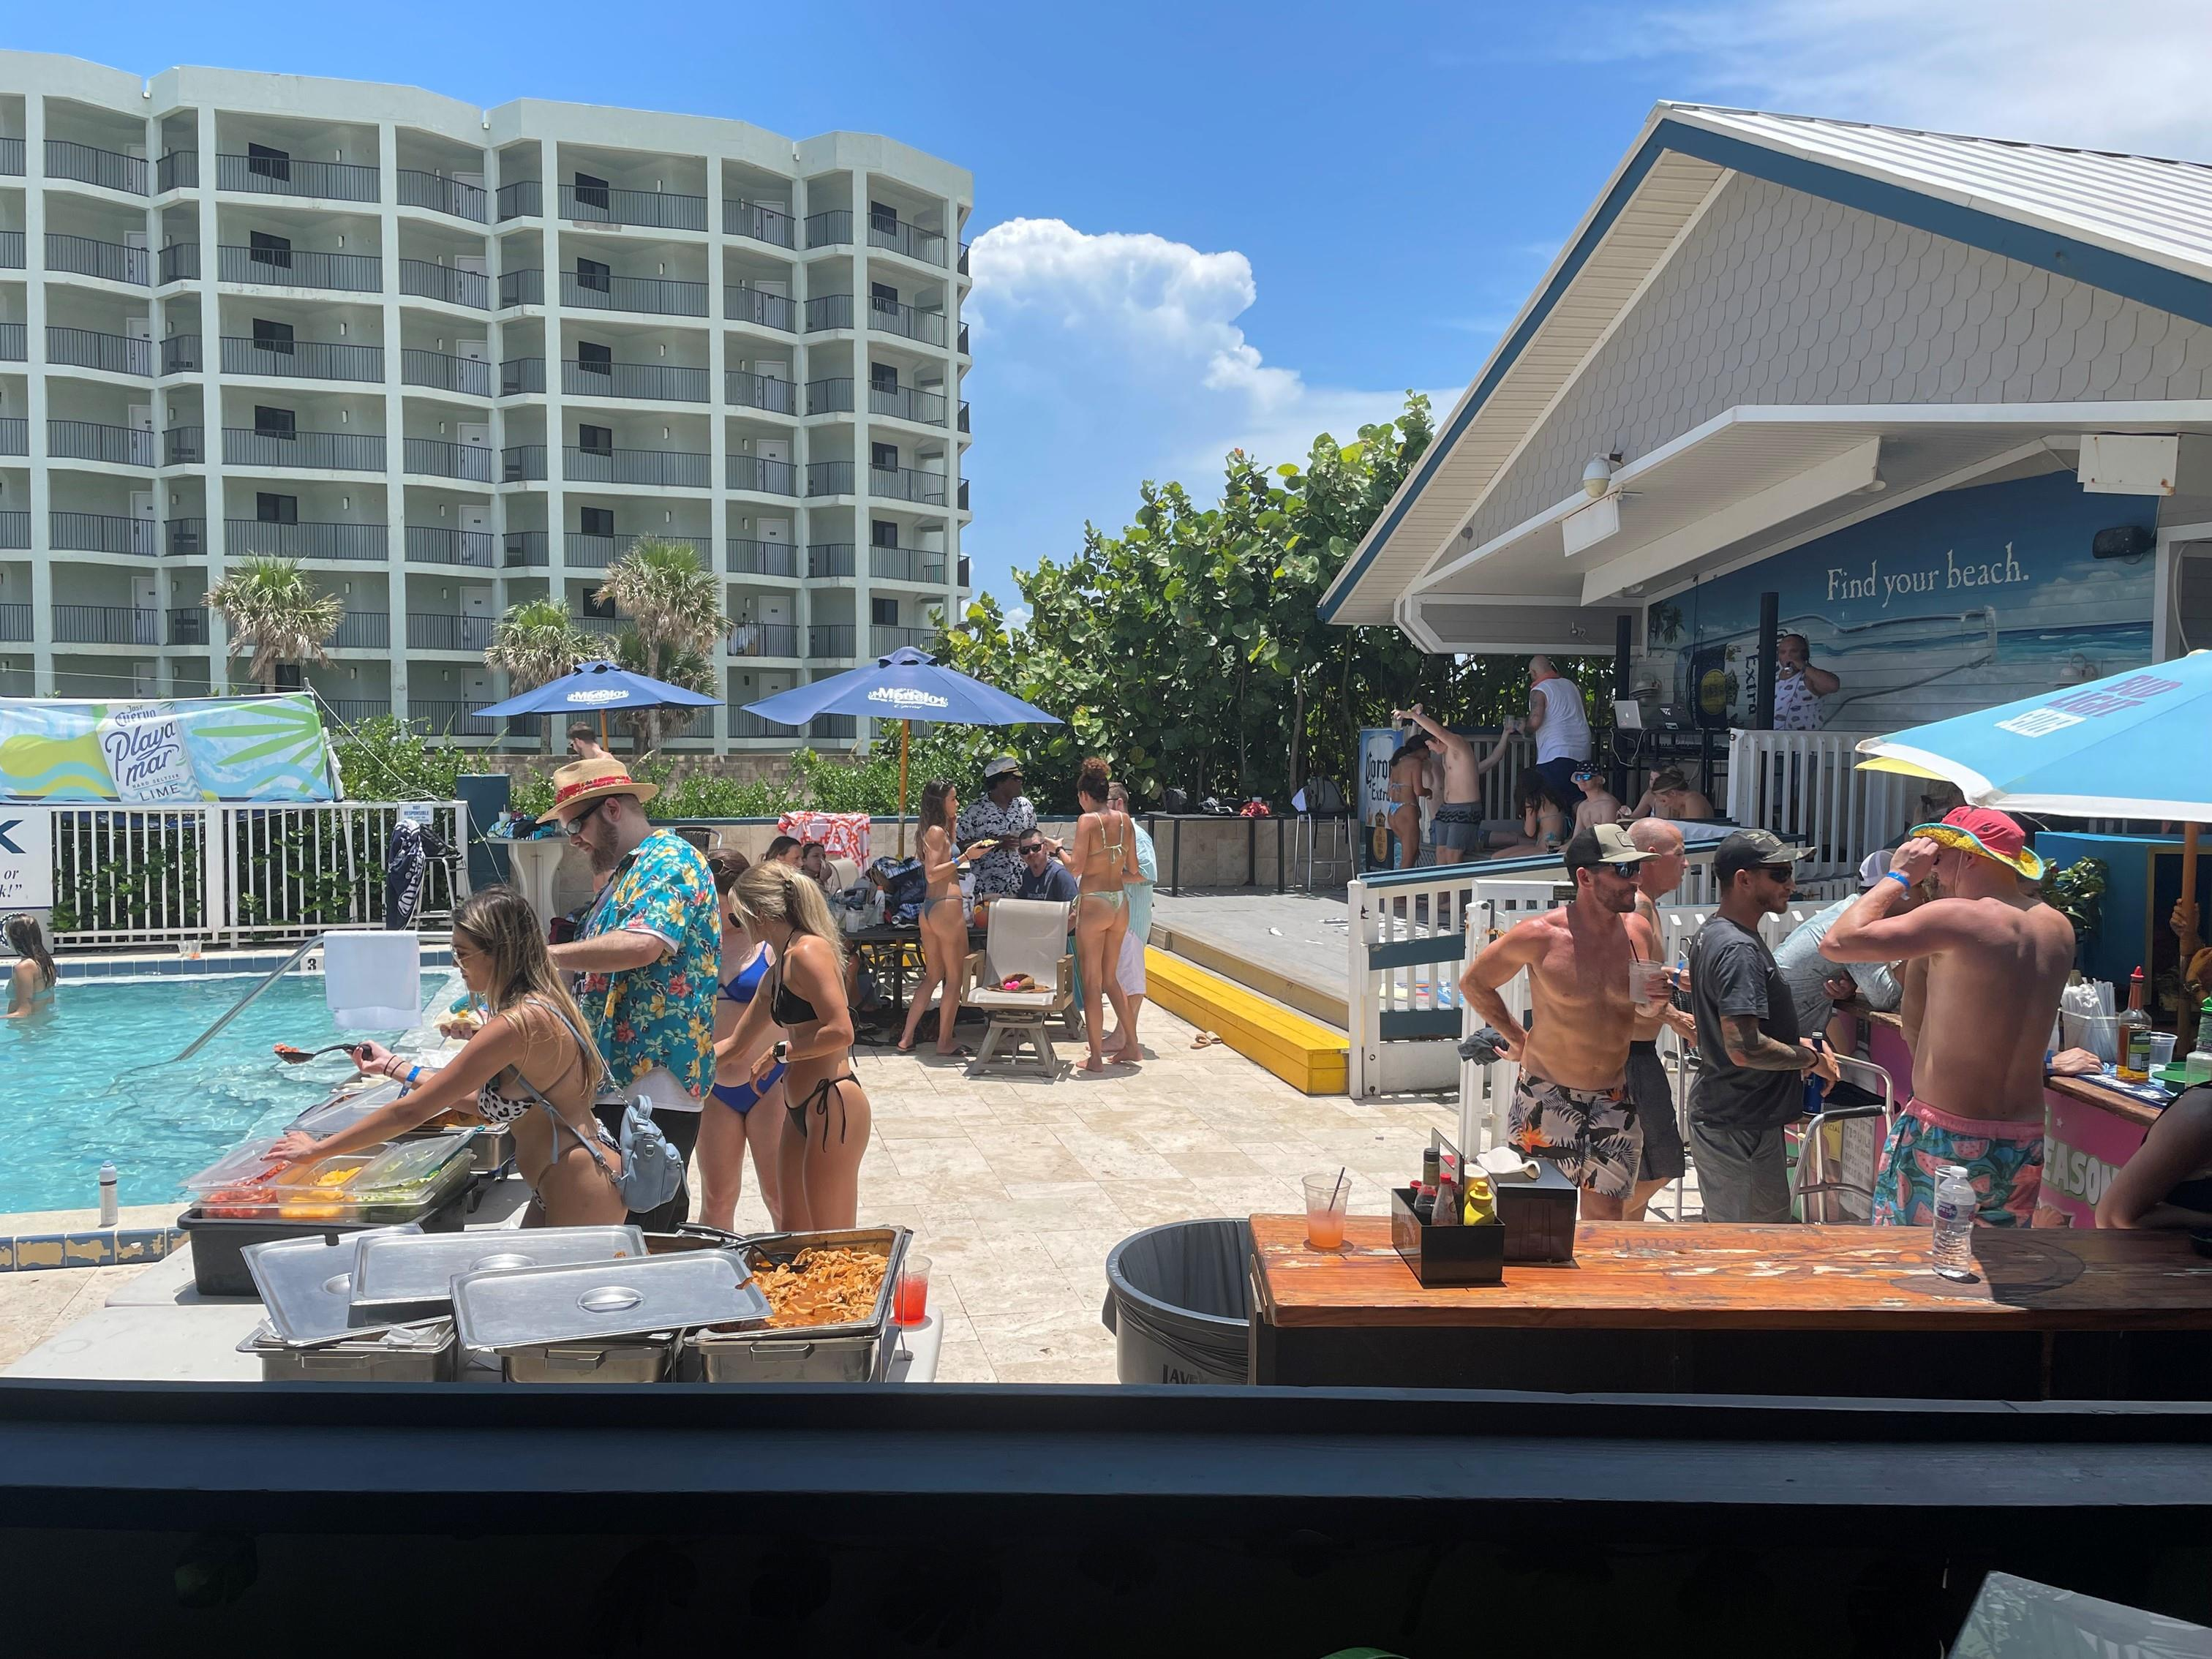 people bbqing by a pool